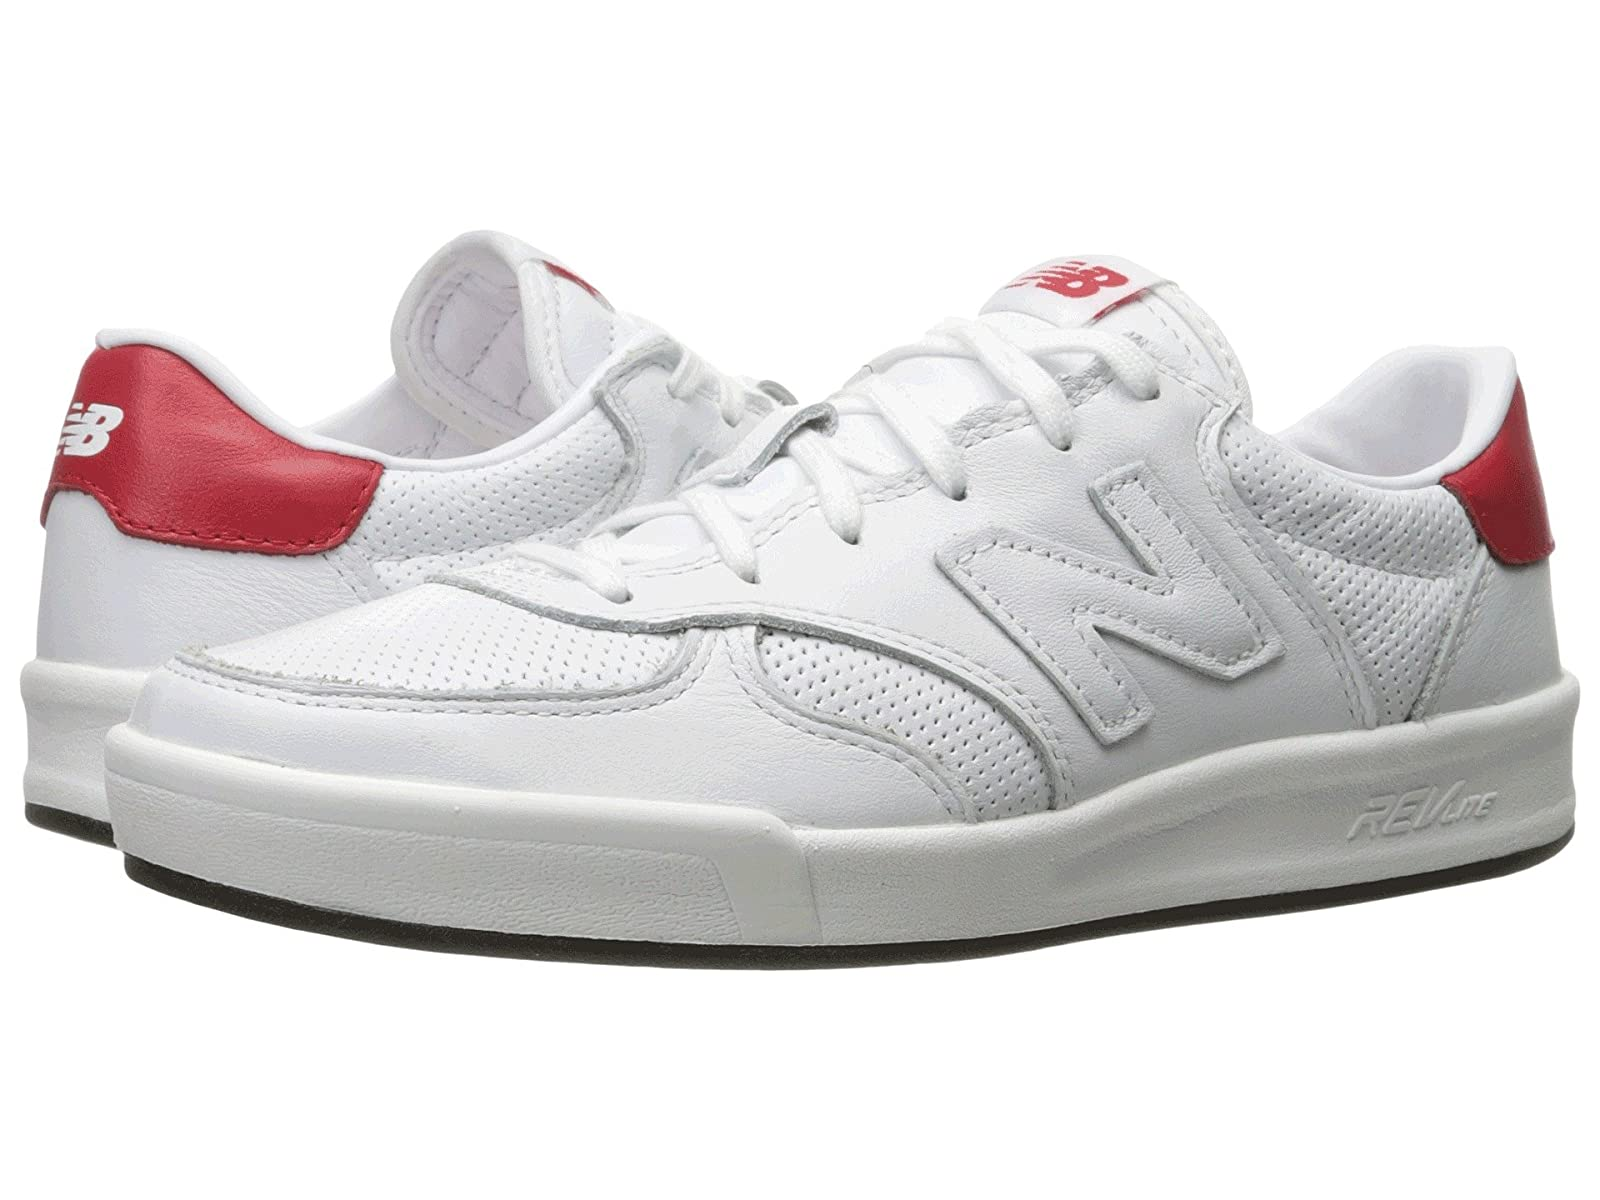 New Balance Classics CRT300v1Atmospheric grades have affordable shoes